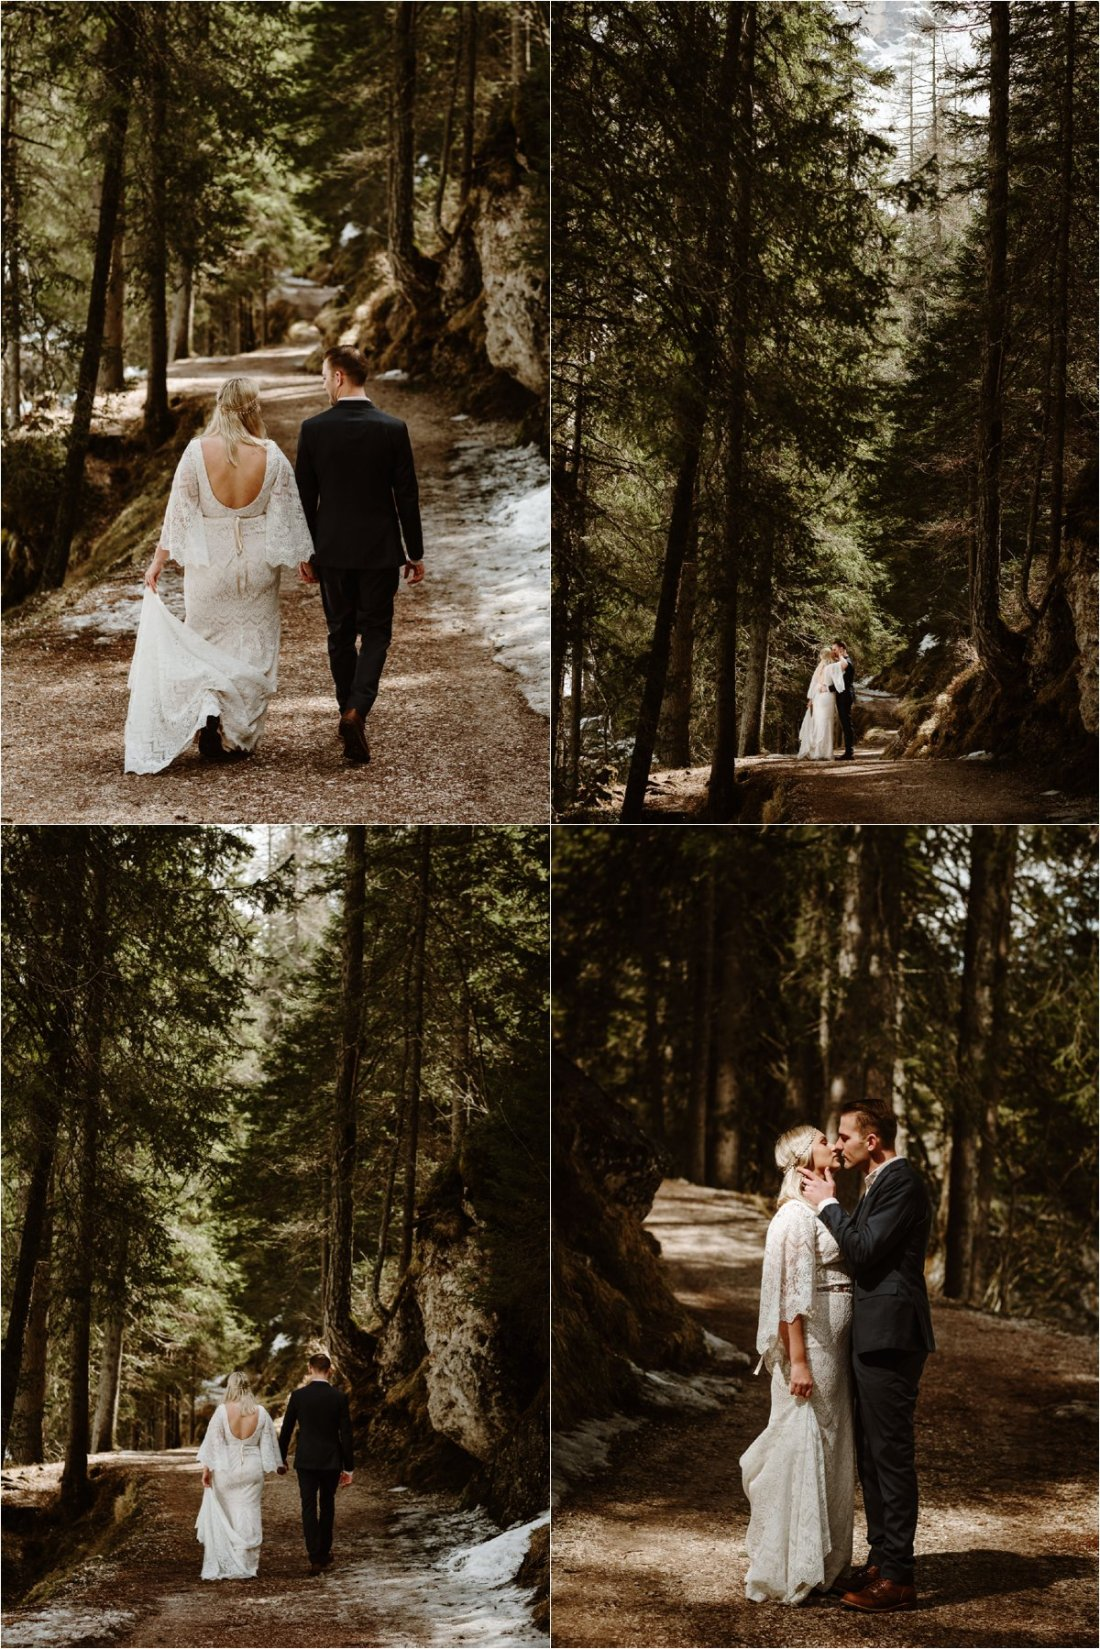 Erika & Nathan walk along the wooded footpaths around Lago di Braies in the Dolomites. Photos by Wild Connections Photography